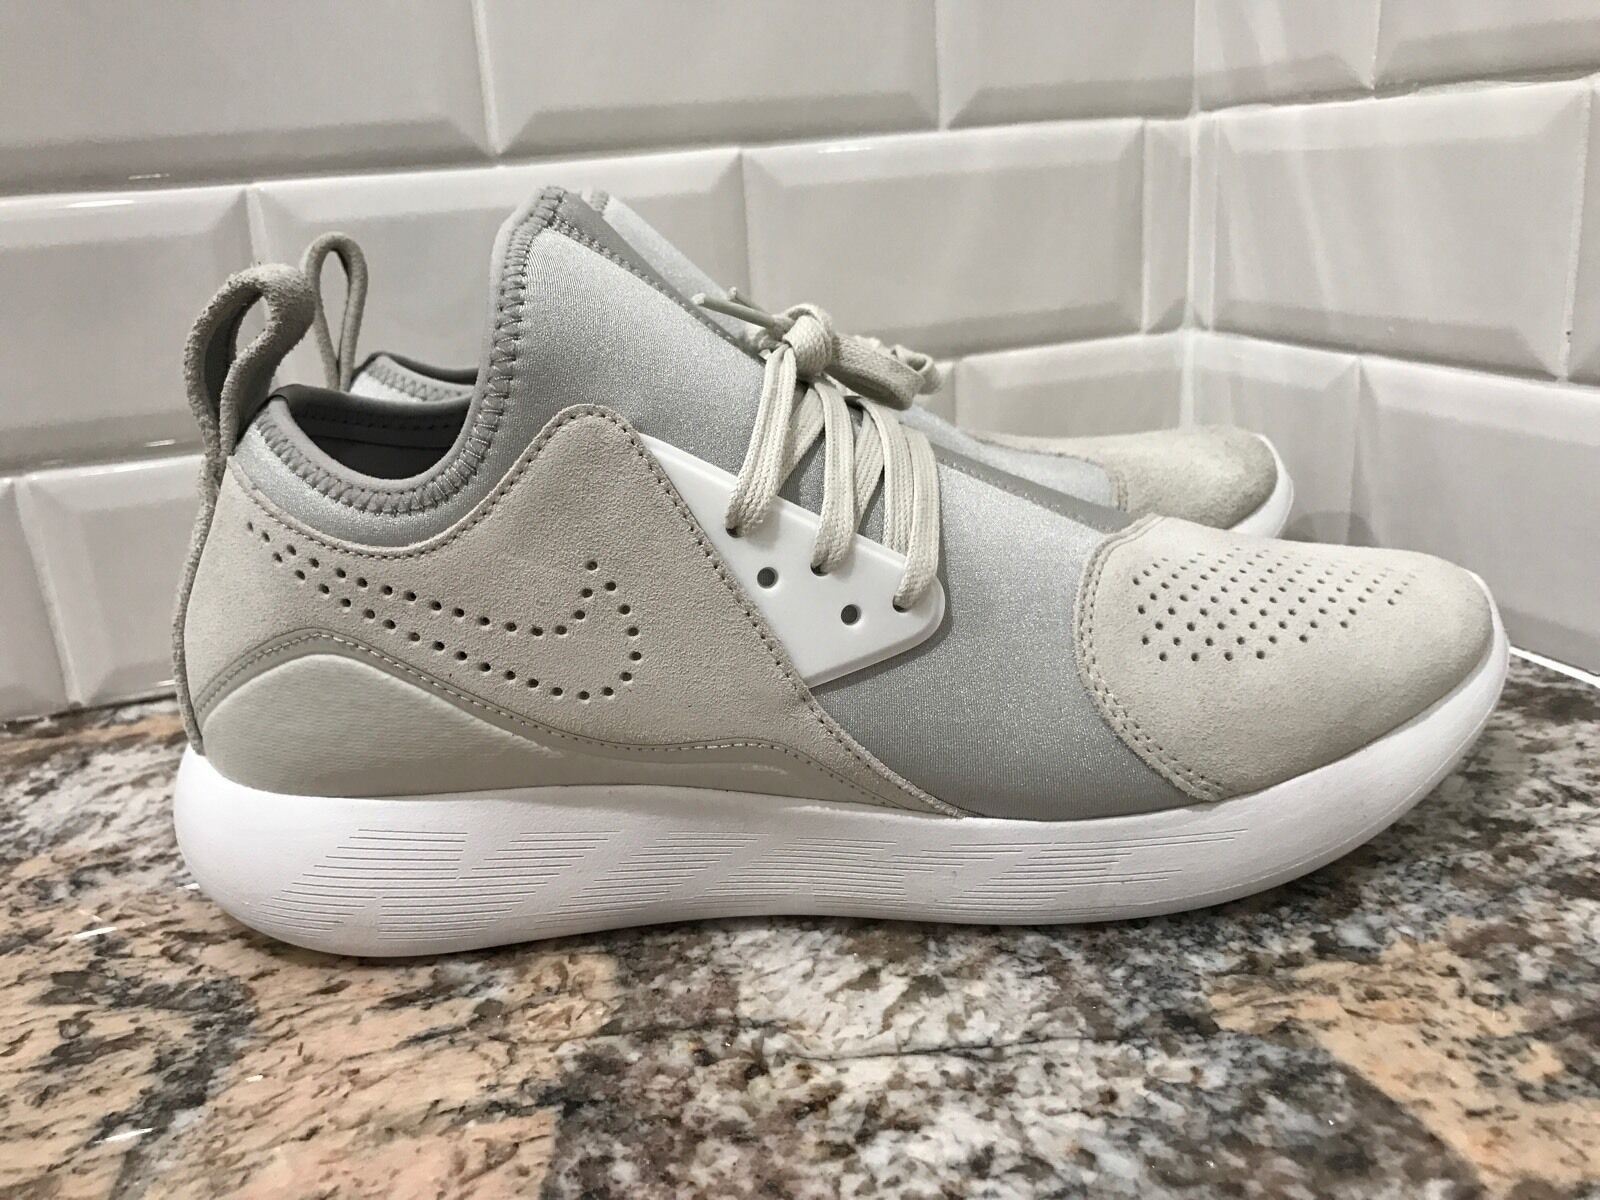 Nike LunarCharge Premium LE Price reduction Brand discount